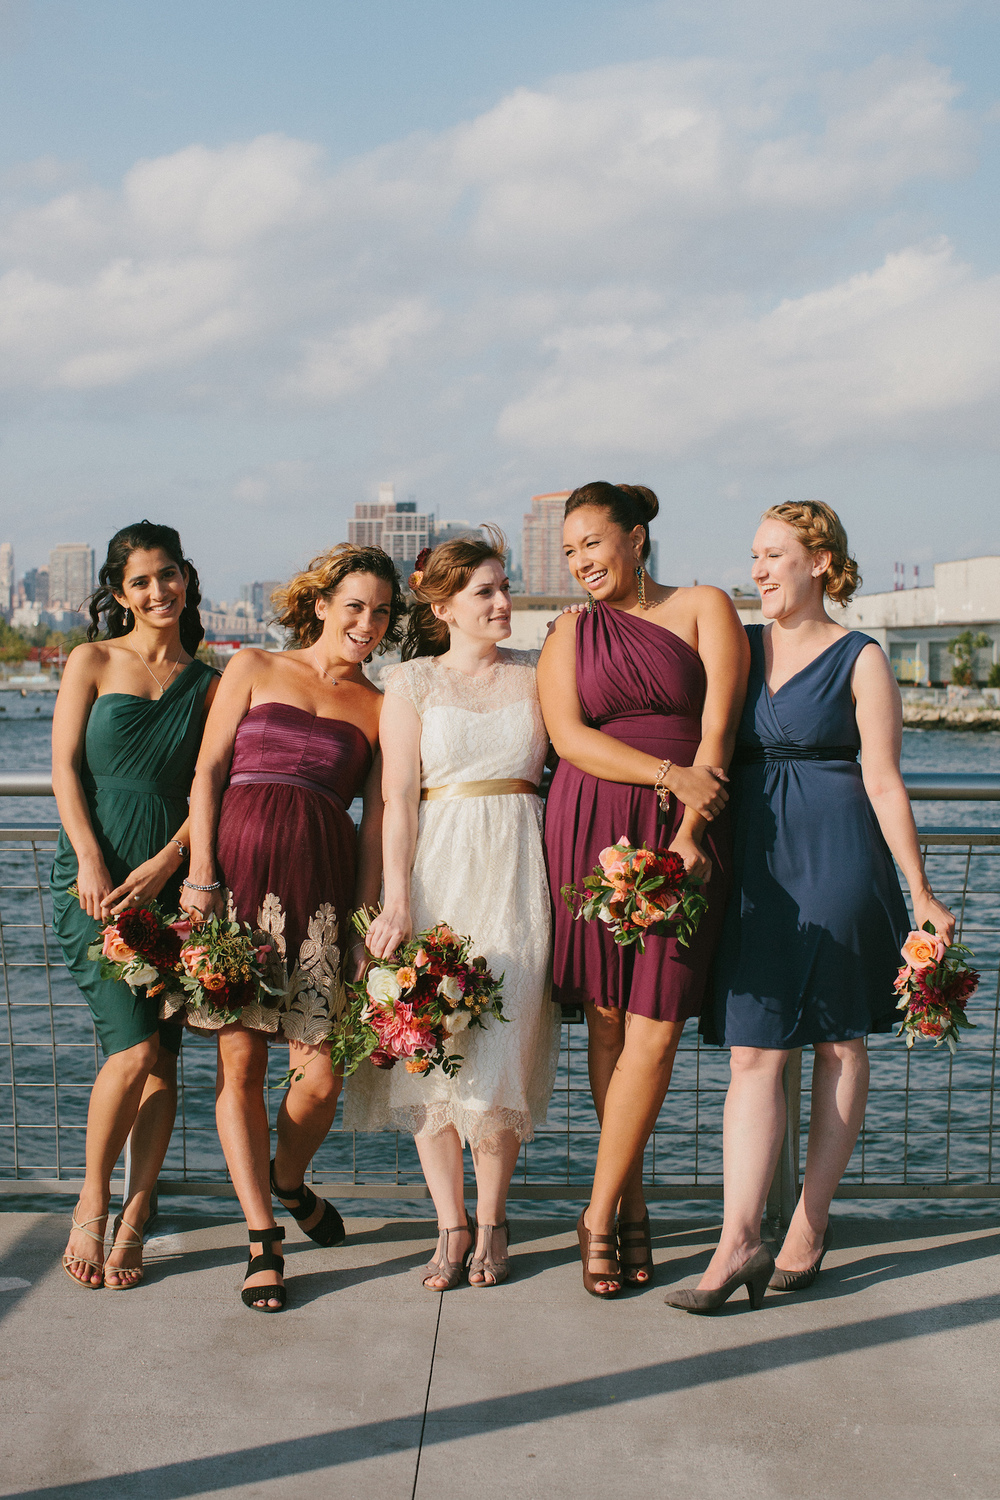 Full Aperture Floral & Corey Torpie Photography  - Brooklyn Wedding - 51.jpeg